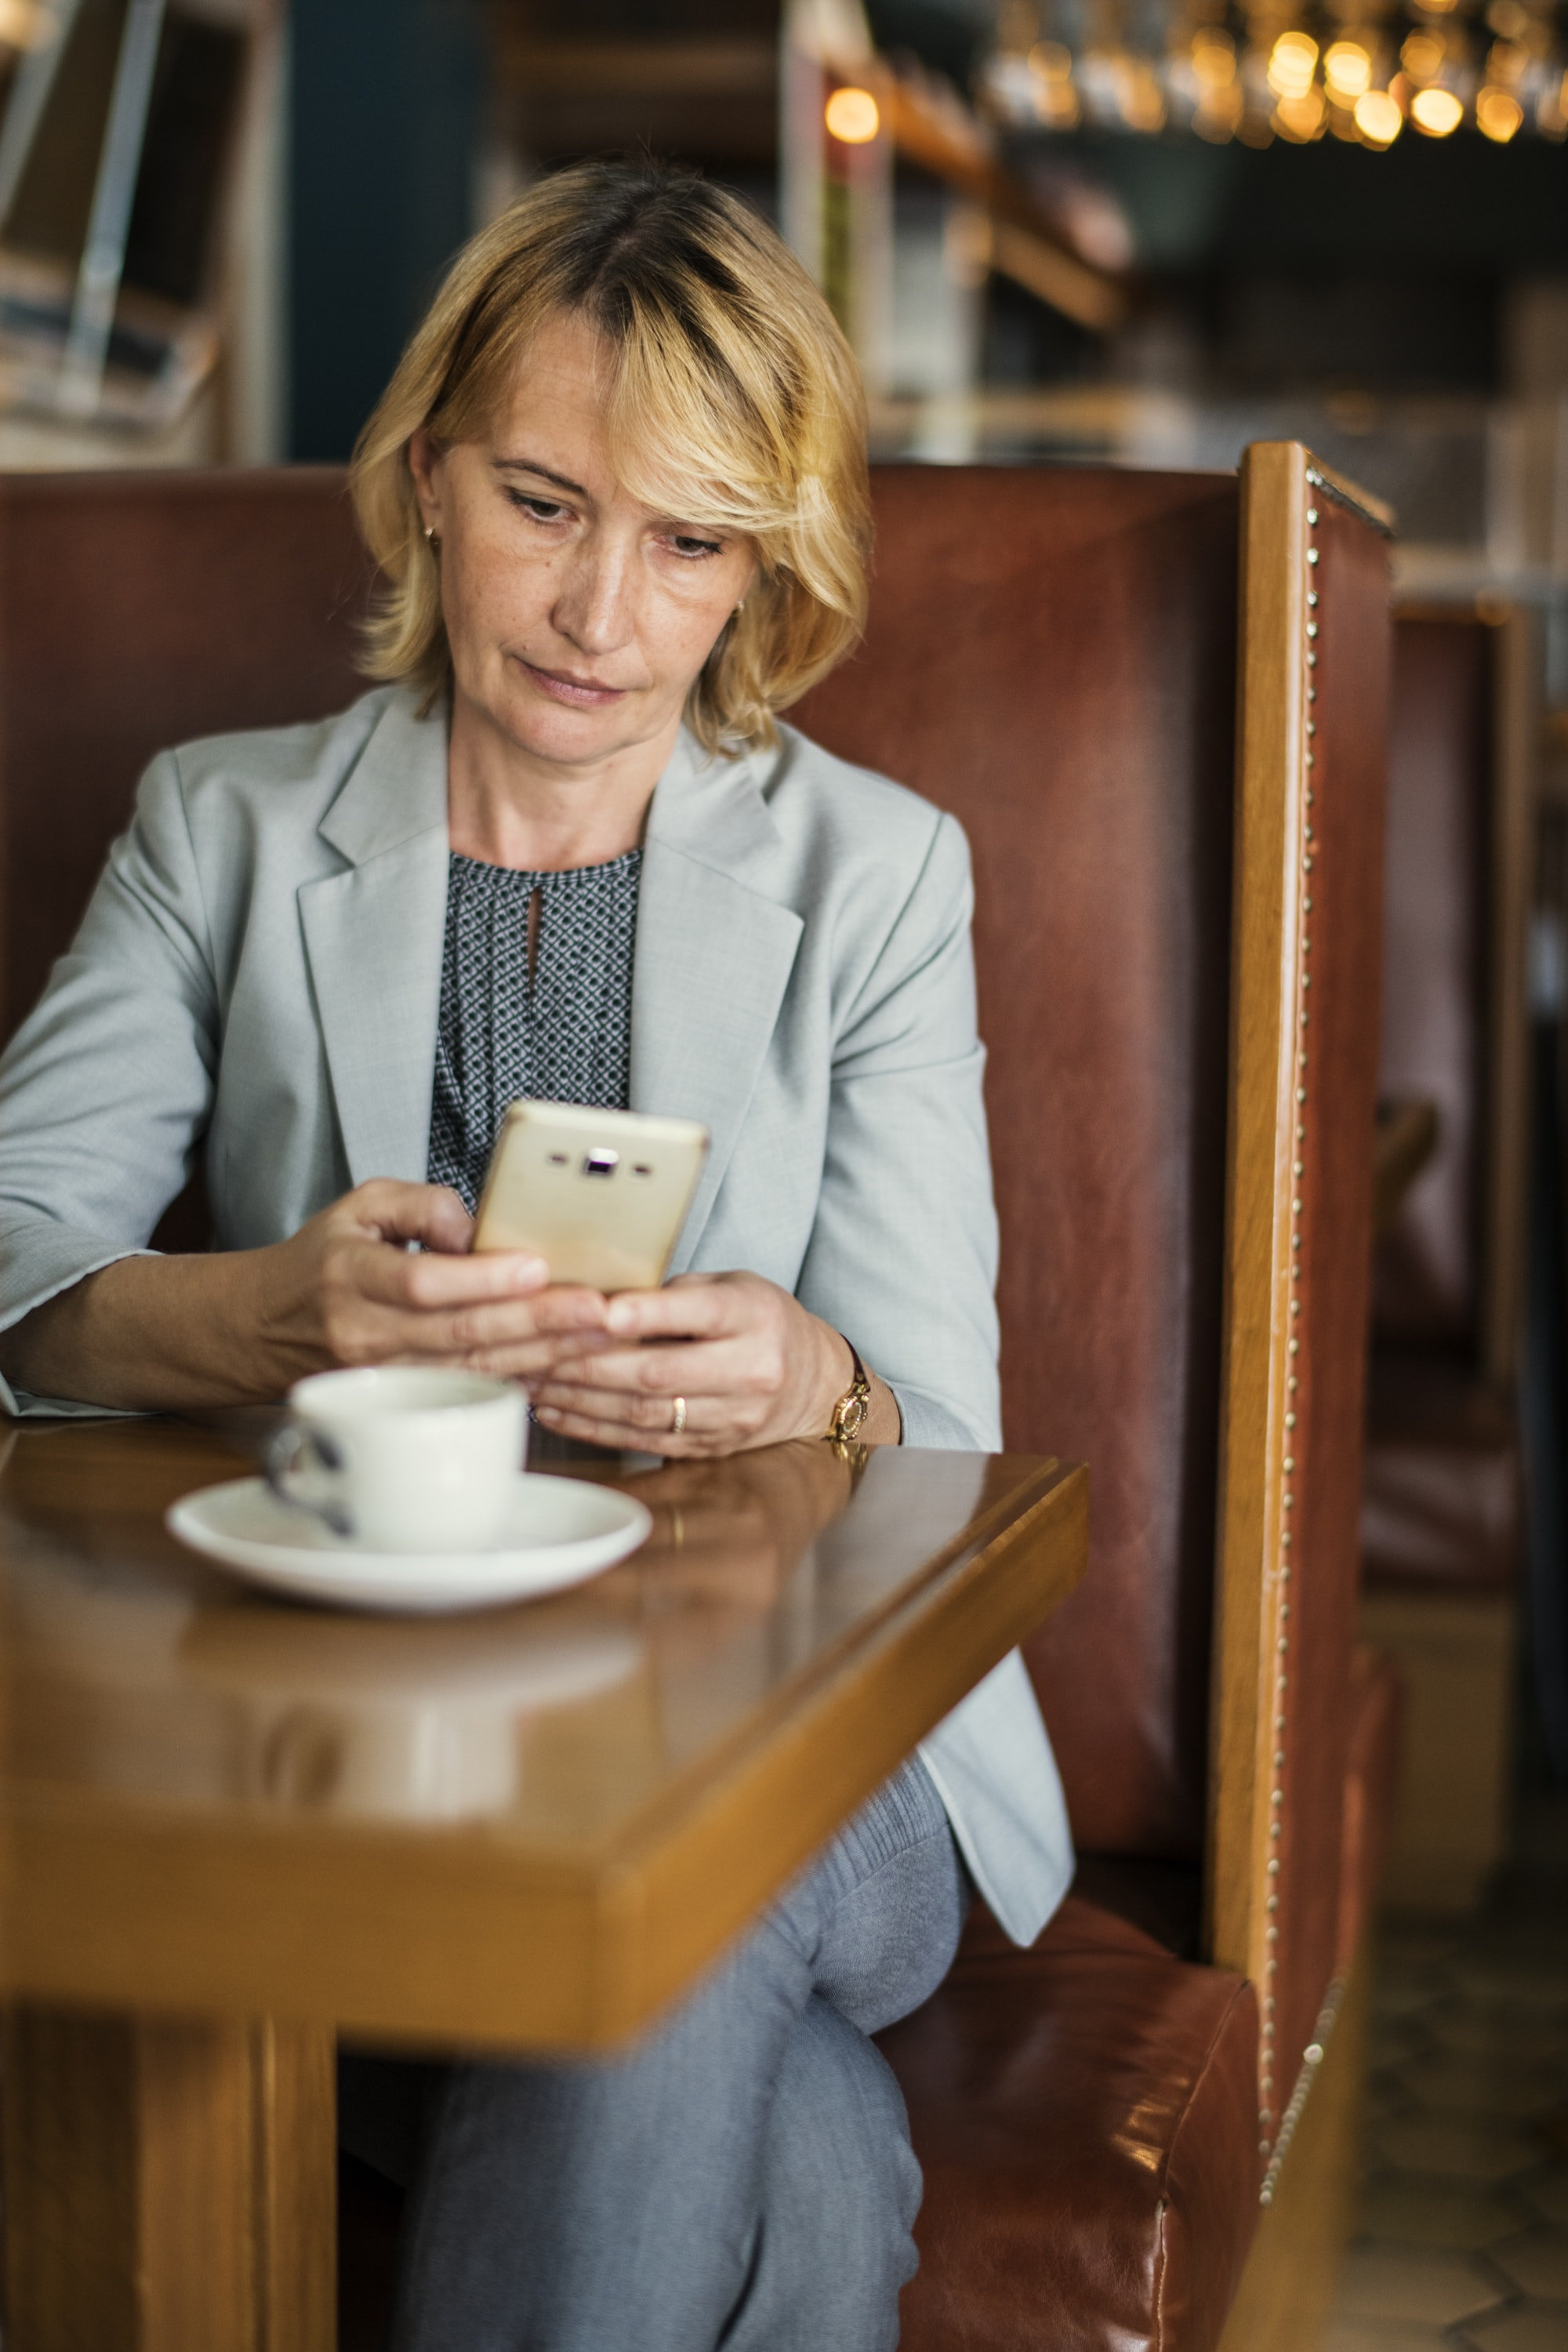 woman using white smartphone on front of table